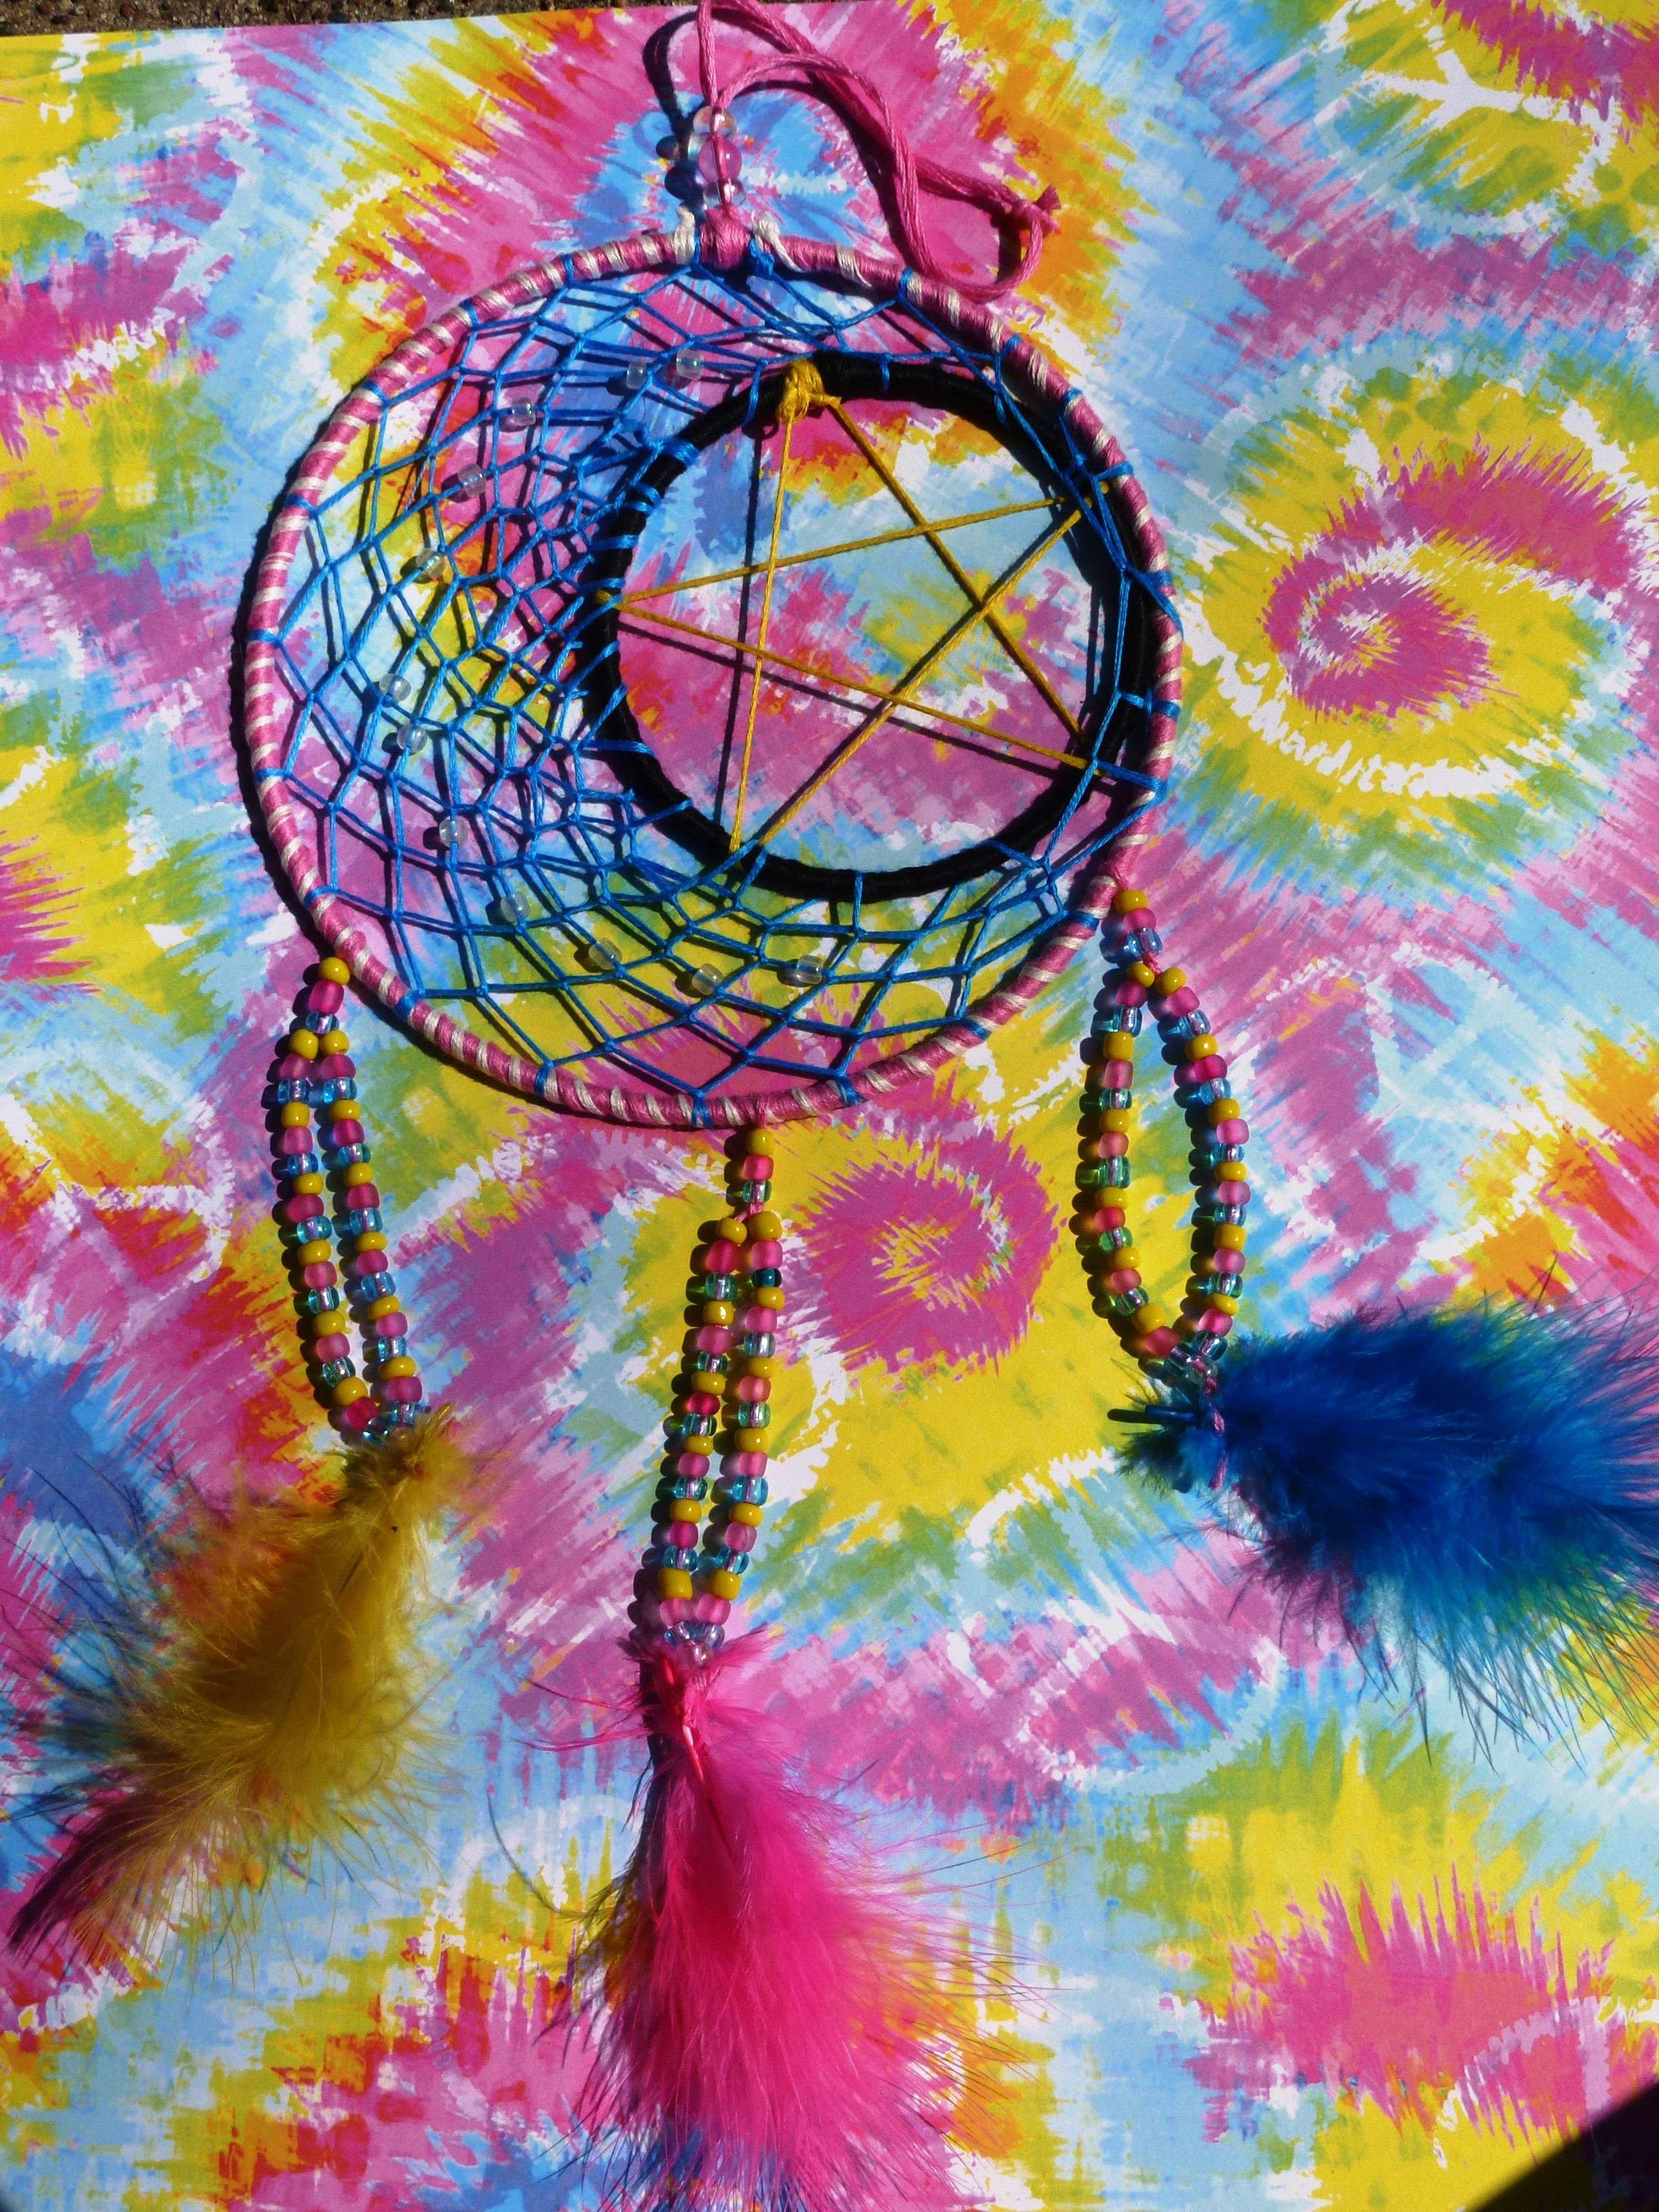 Pin by Alicia Pyles on dream catcher   Pinterest - photo#37